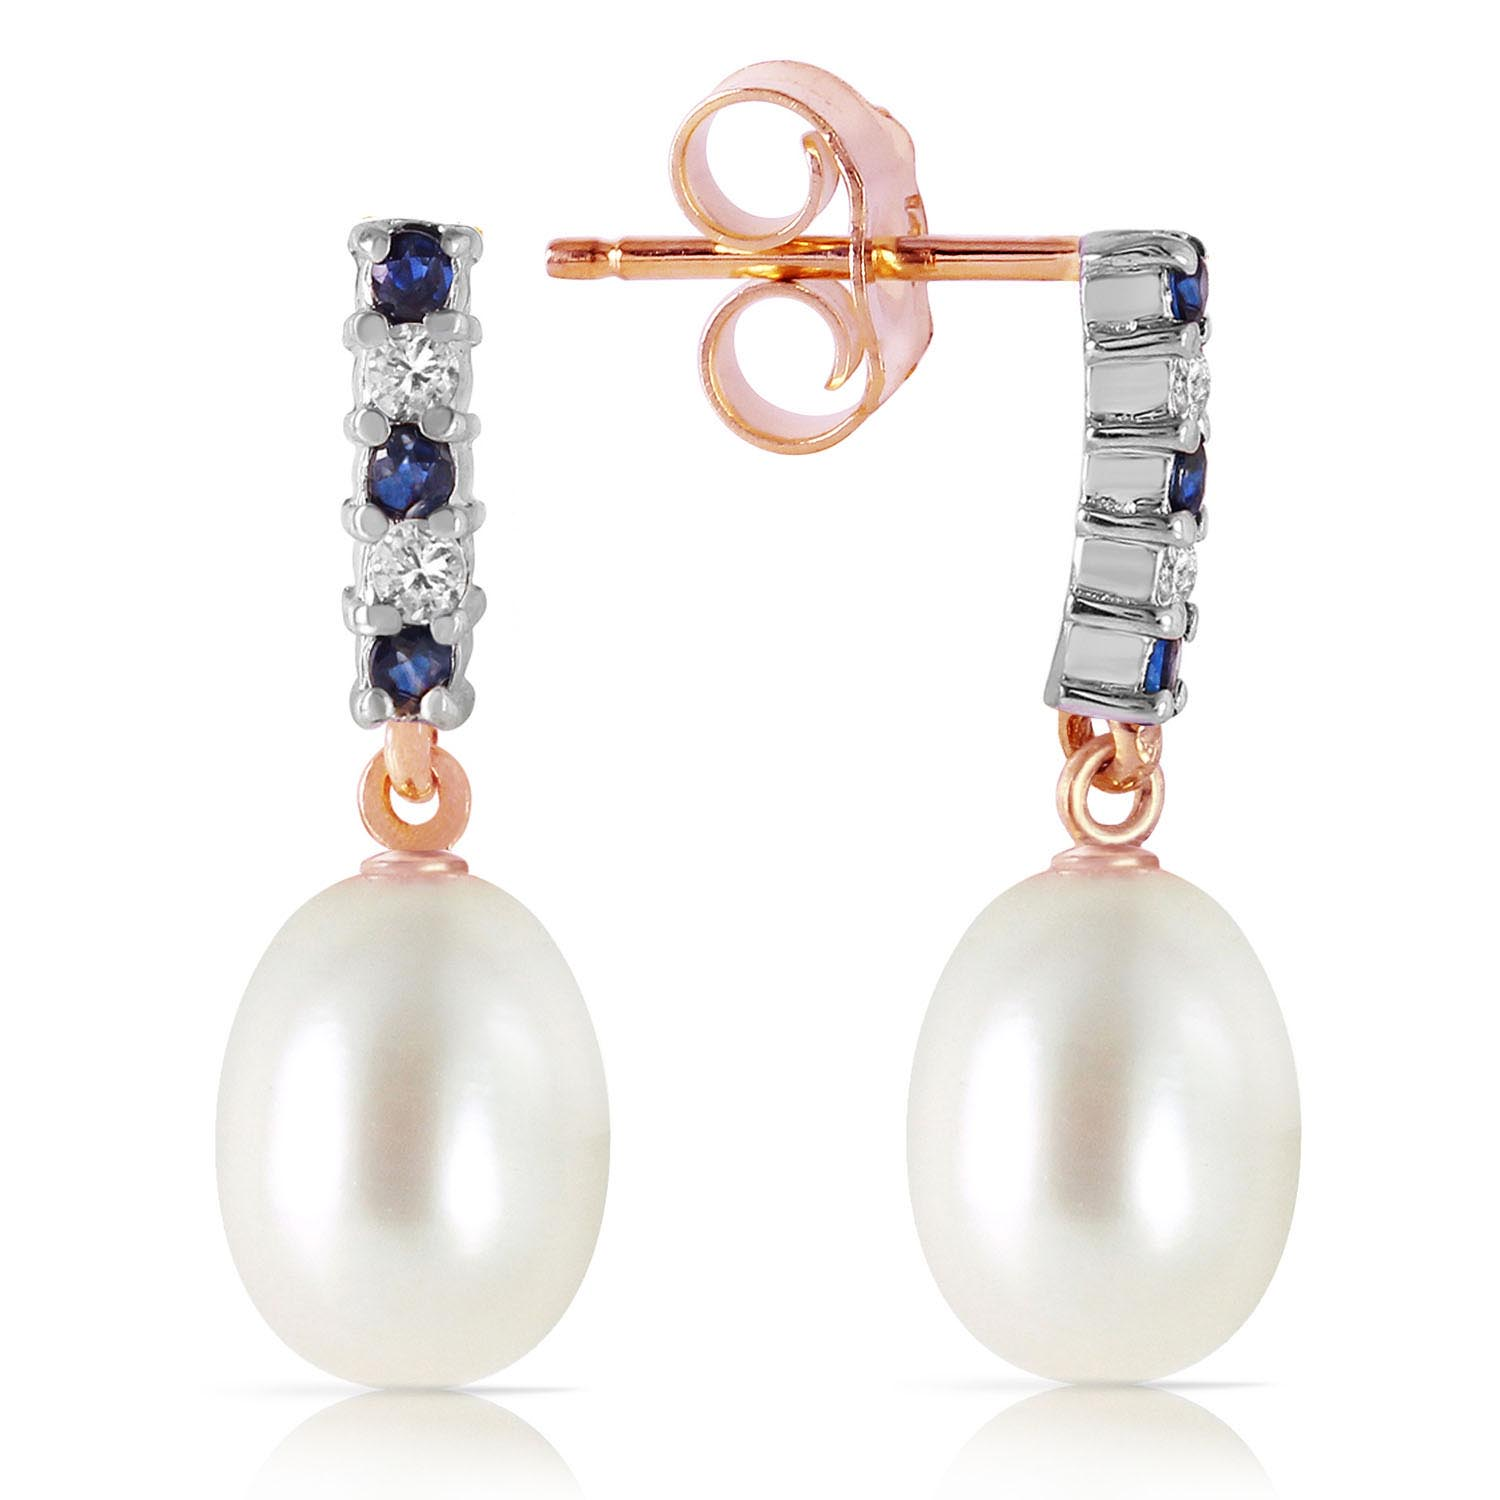 Pearl & Sapphire Stud Earrings in 9ct Rose Gold